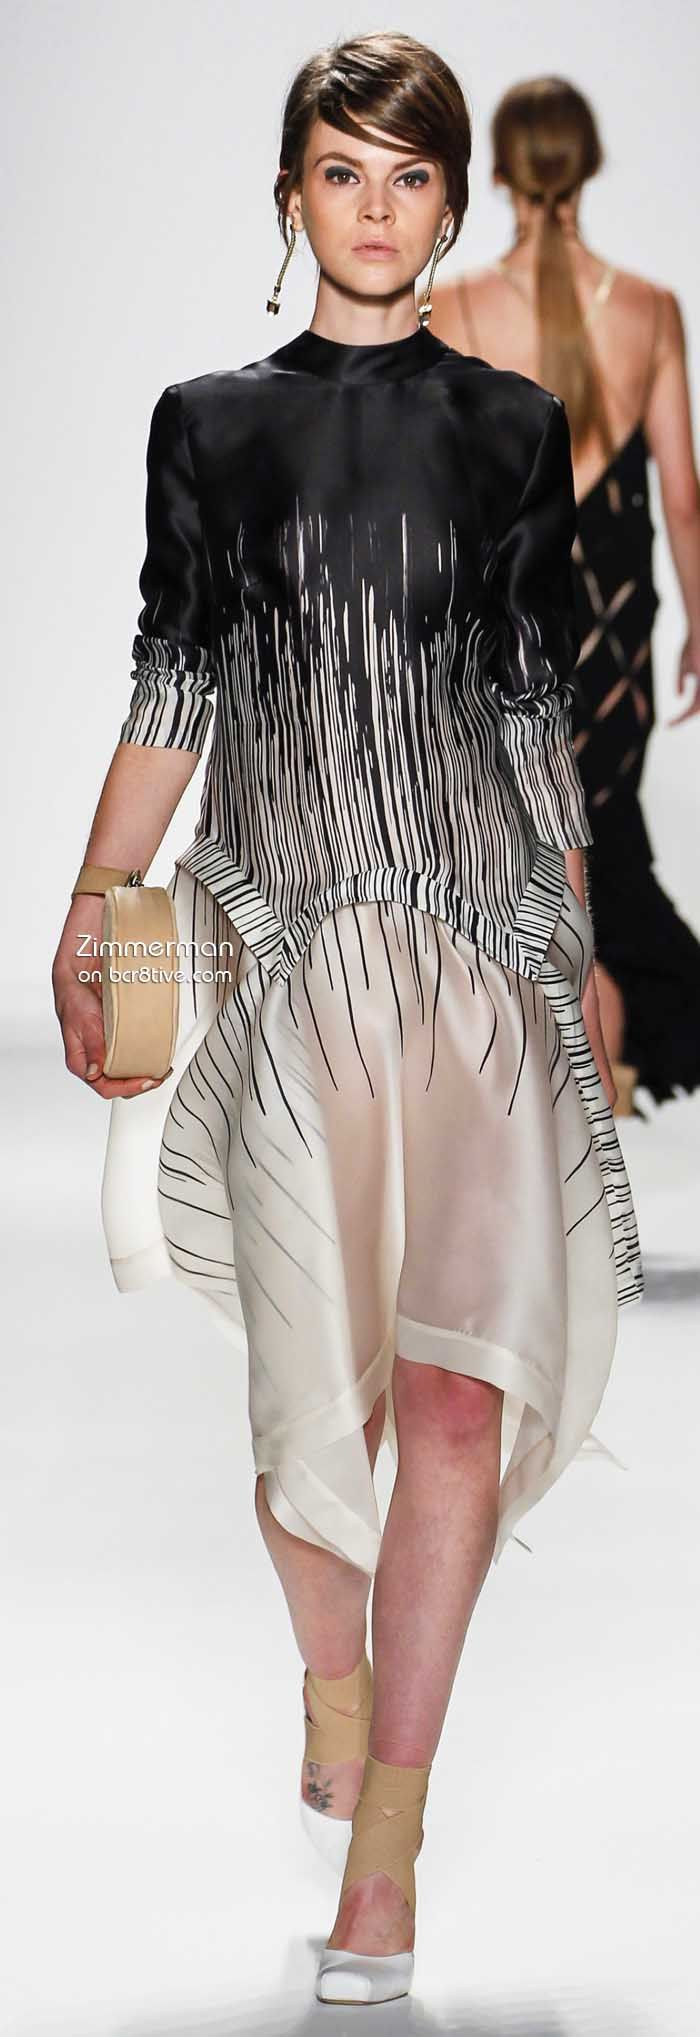 Zimmermann Spring 2014 New York Fashion Week #NYFW - Love this Dress » This Collection Pinned to #Fashion Week